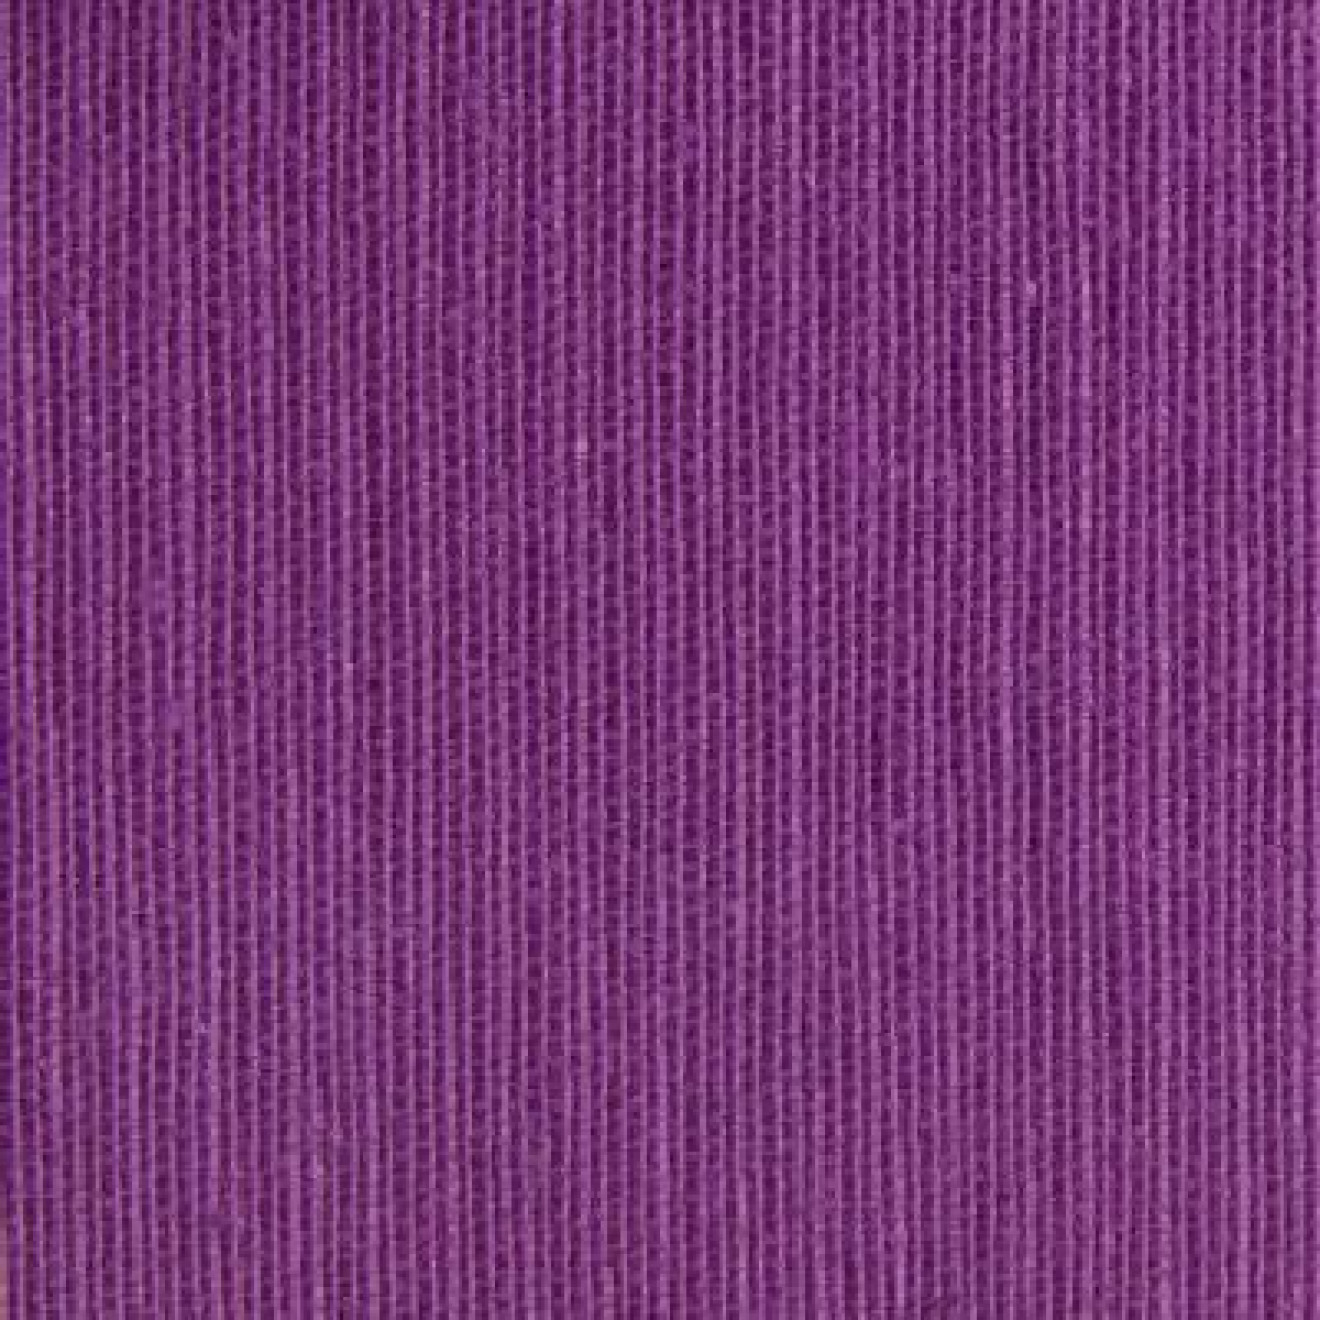 Dreieck - Acrylstoff Loneta Color 141